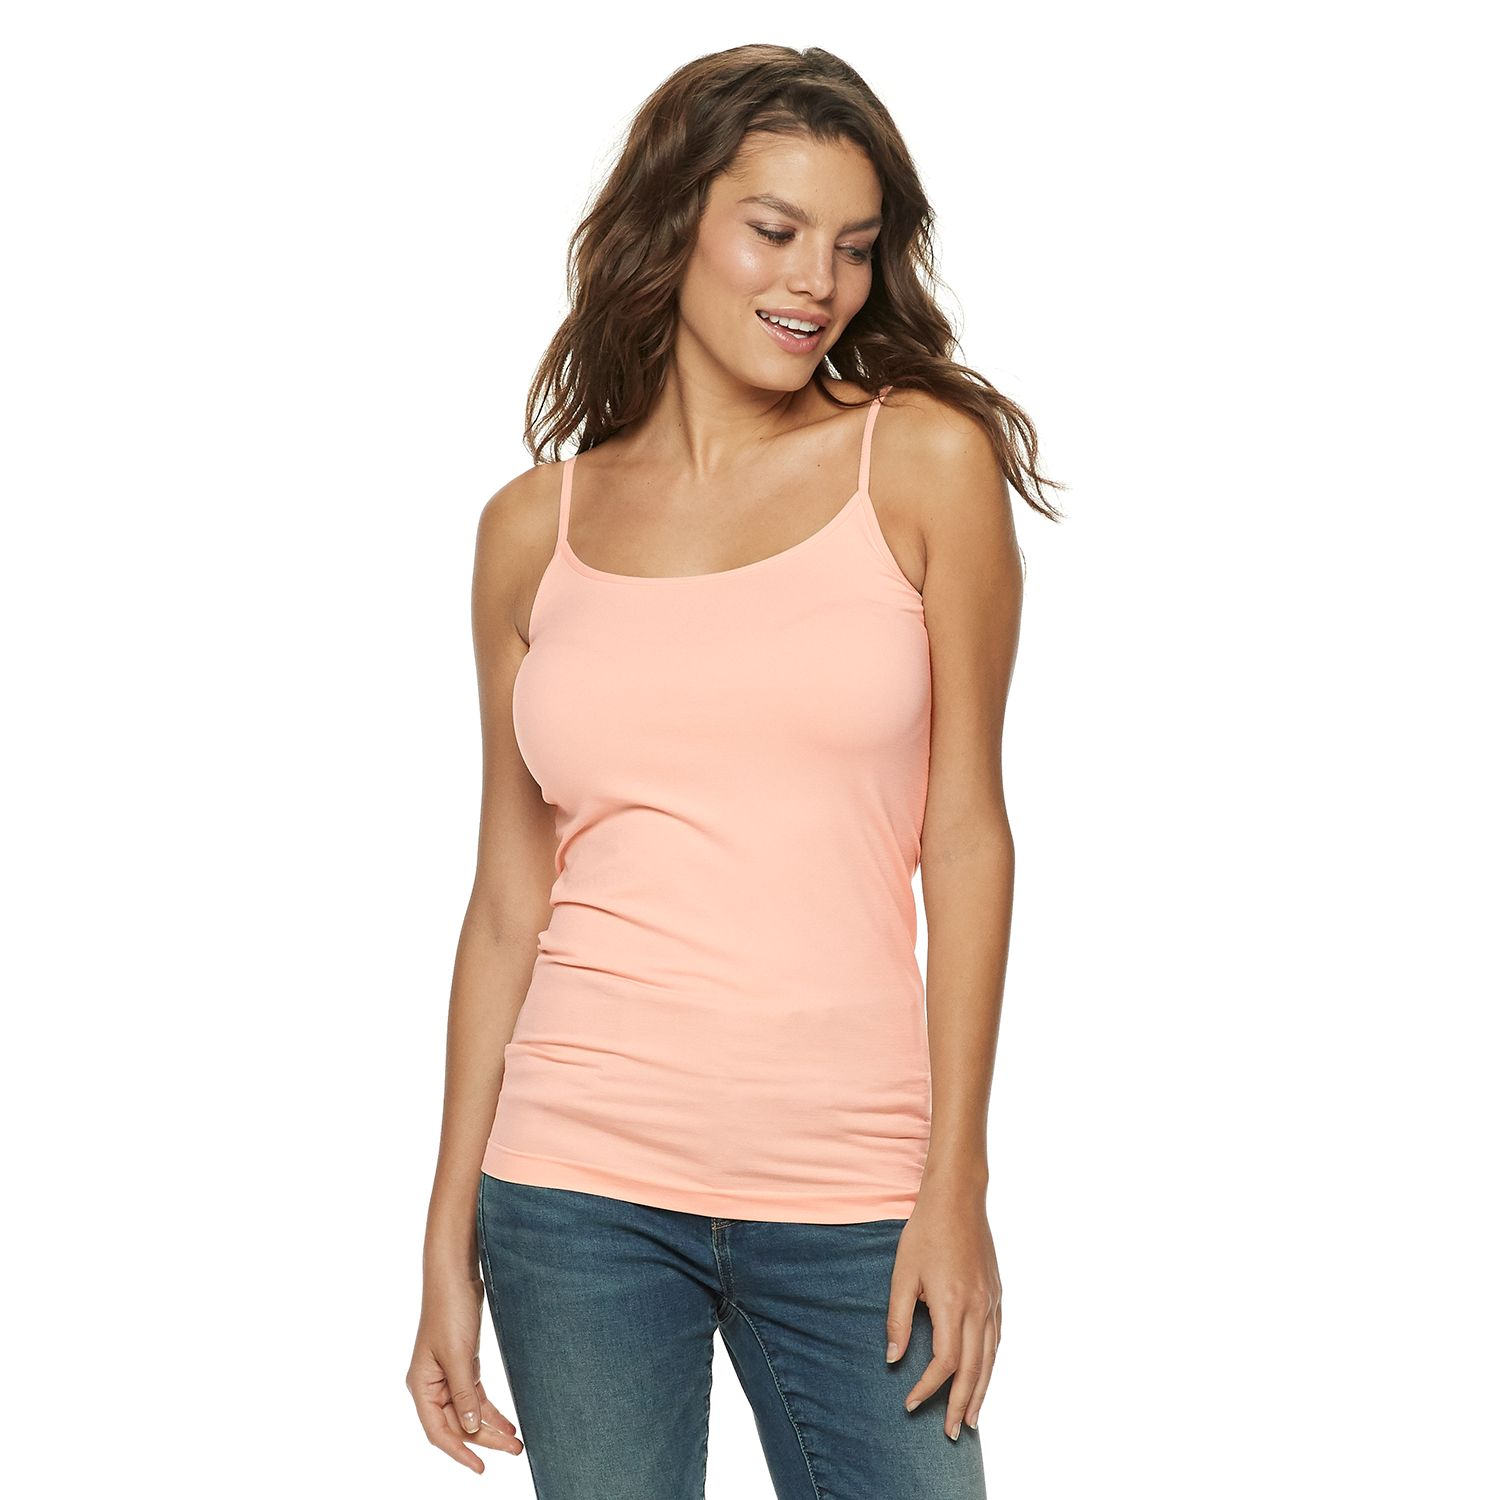 Plus Size Tank Tops & Camisoles: Halter, Babydoll, Tube Tops ...